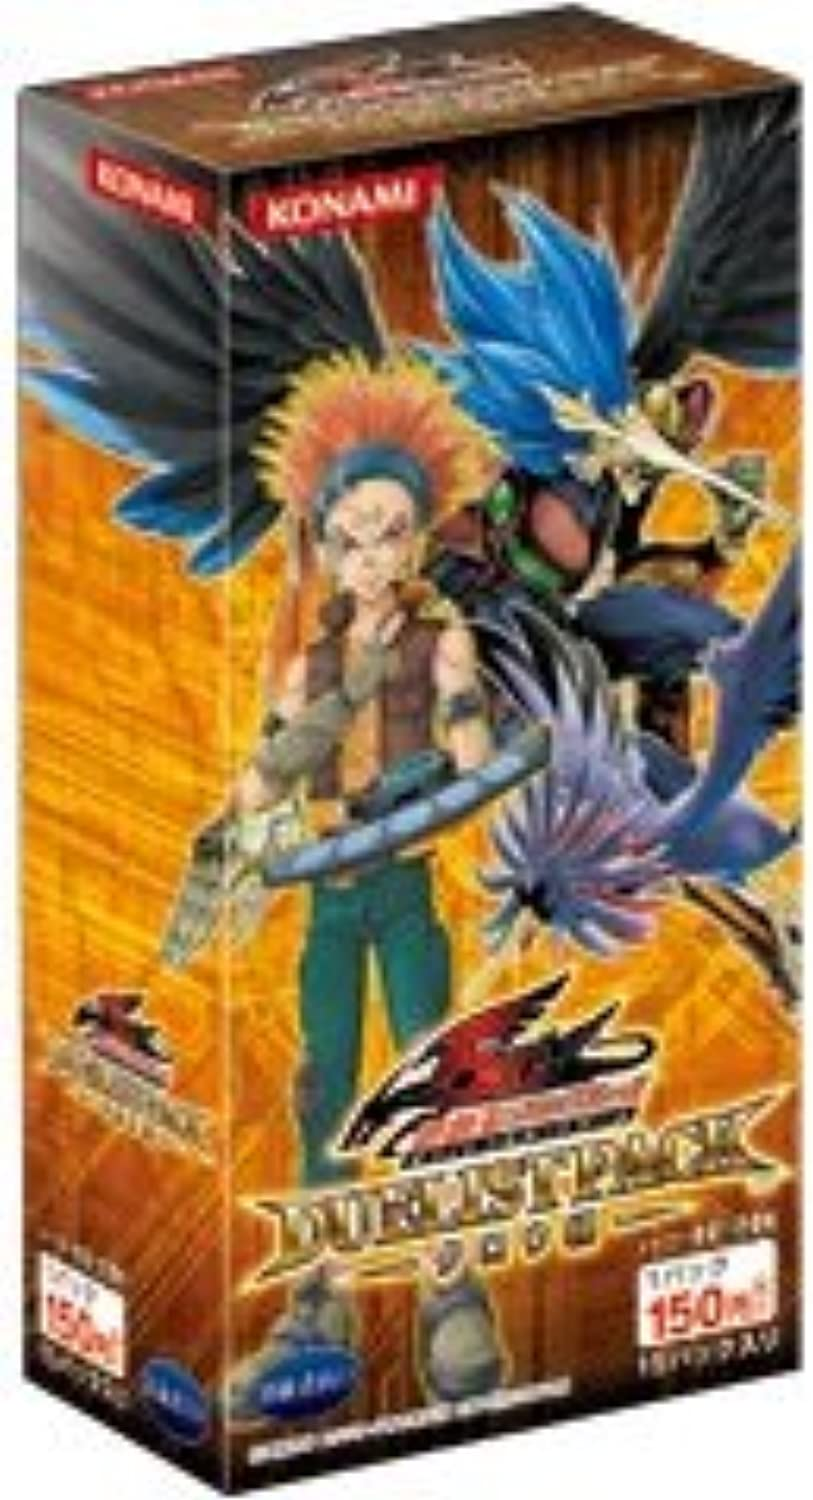 descuento de ventas Yu-Gi-Oh  -5D's- Official Official Official Coched Juego Duelist Pack Crow (15packs)  100% autentico